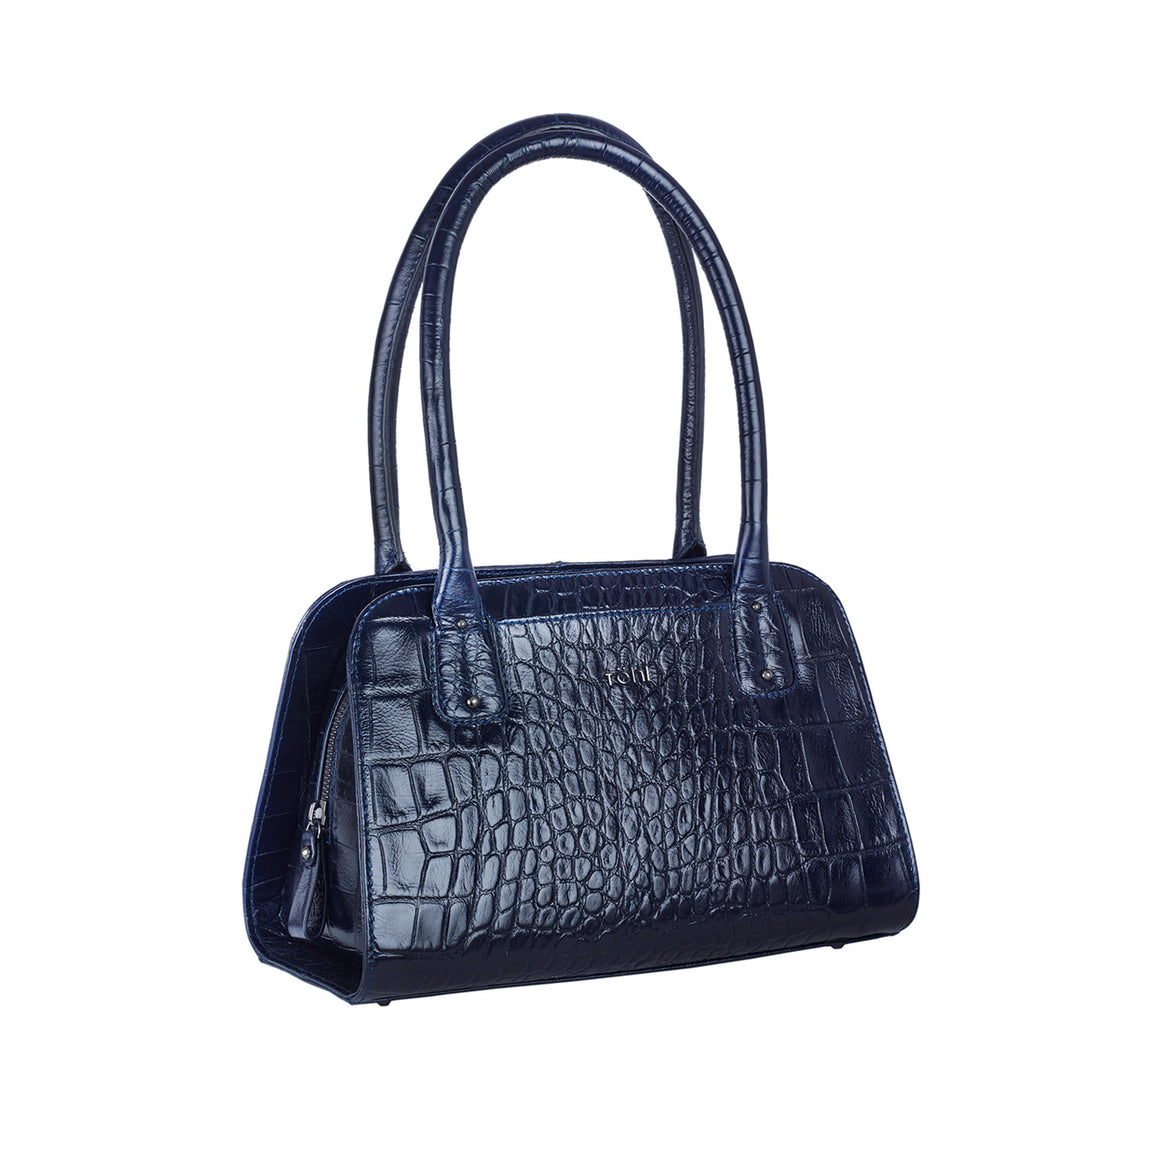 HH 0006 - TOHL PALOMA WOMEN'S SHOULDER BAG - CROCODILLO LANCIVERT